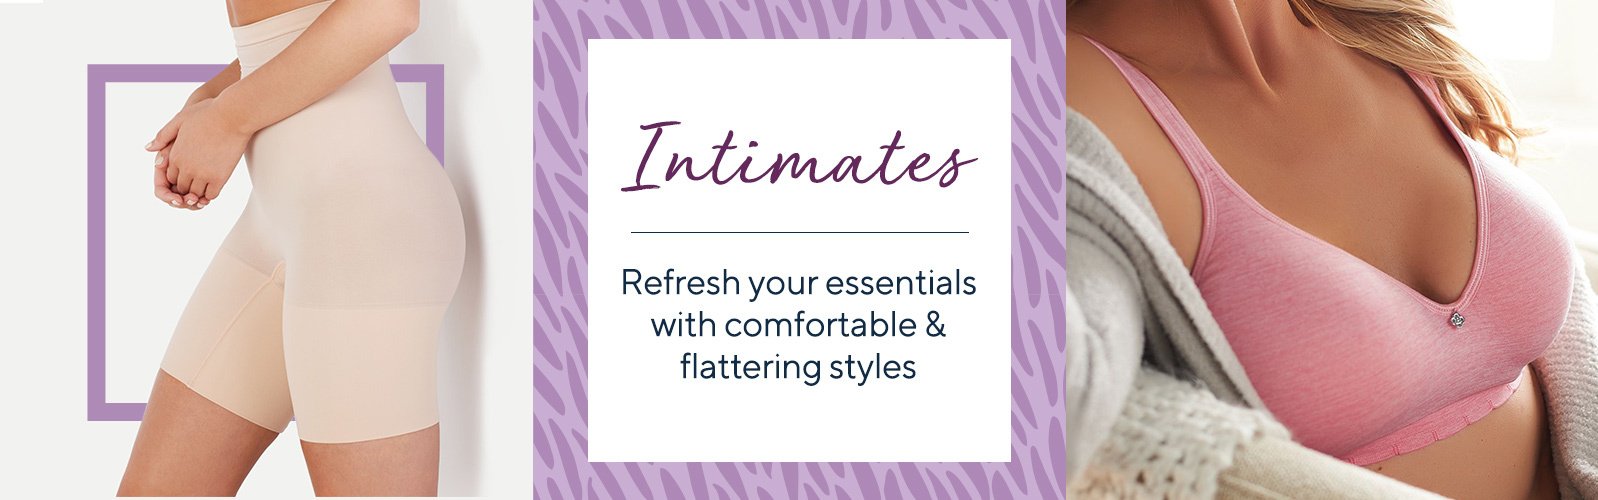 Intimates  Refresh your essentials with comfortable & flattering styles